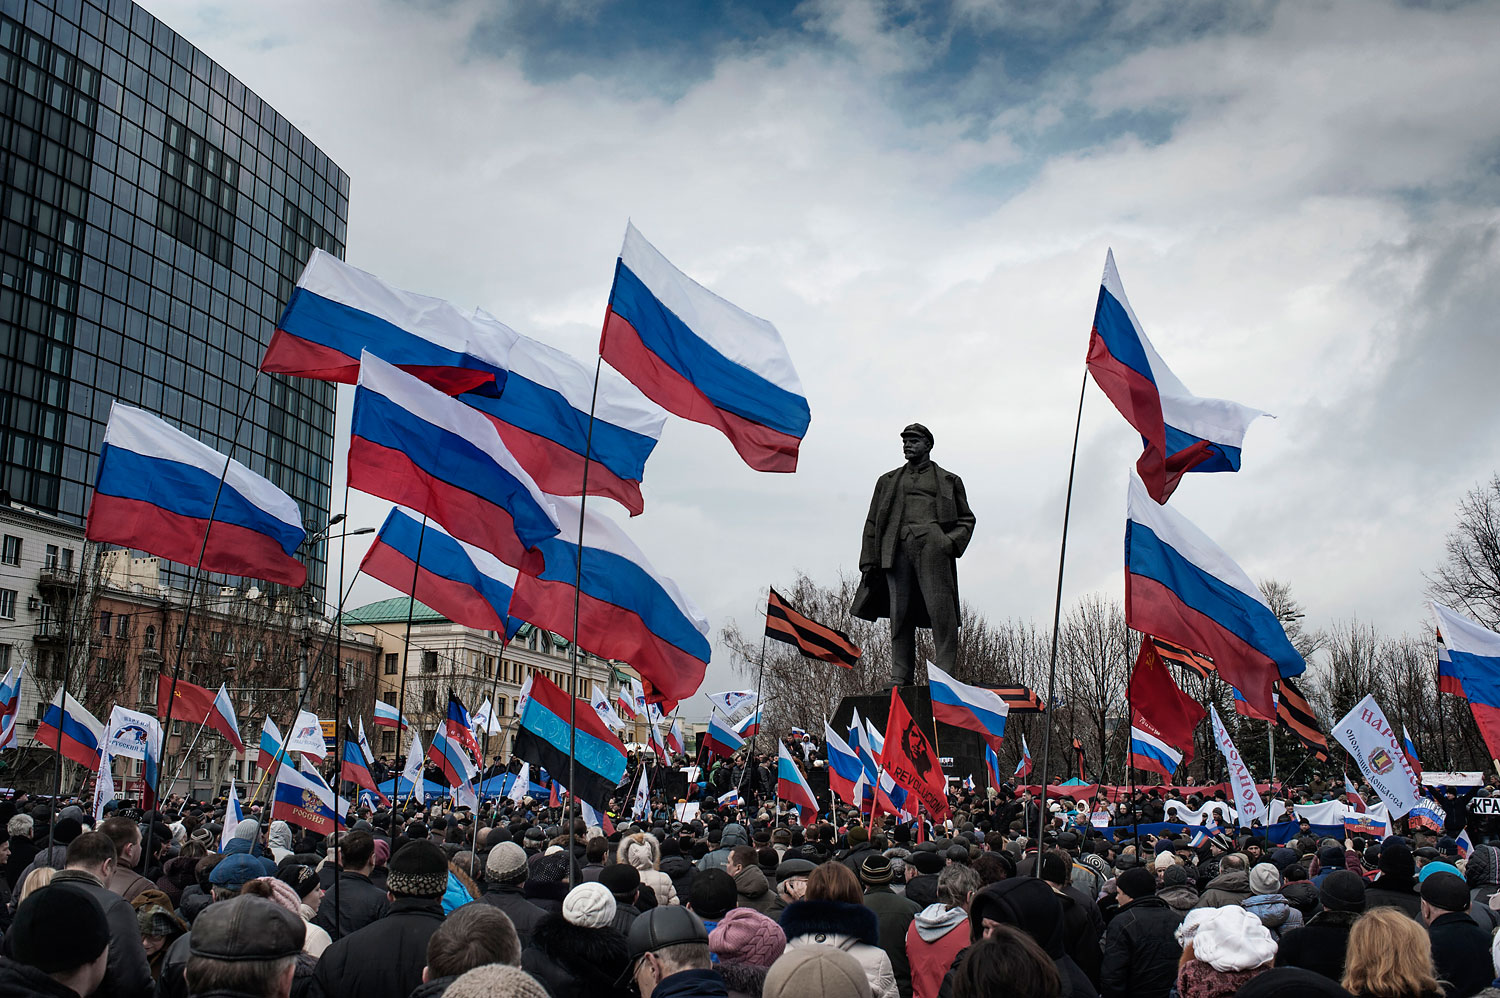 Pro-Russia supporters gather and wave Russian flags in Lenin Square in Donetsk, March 16, 2014.